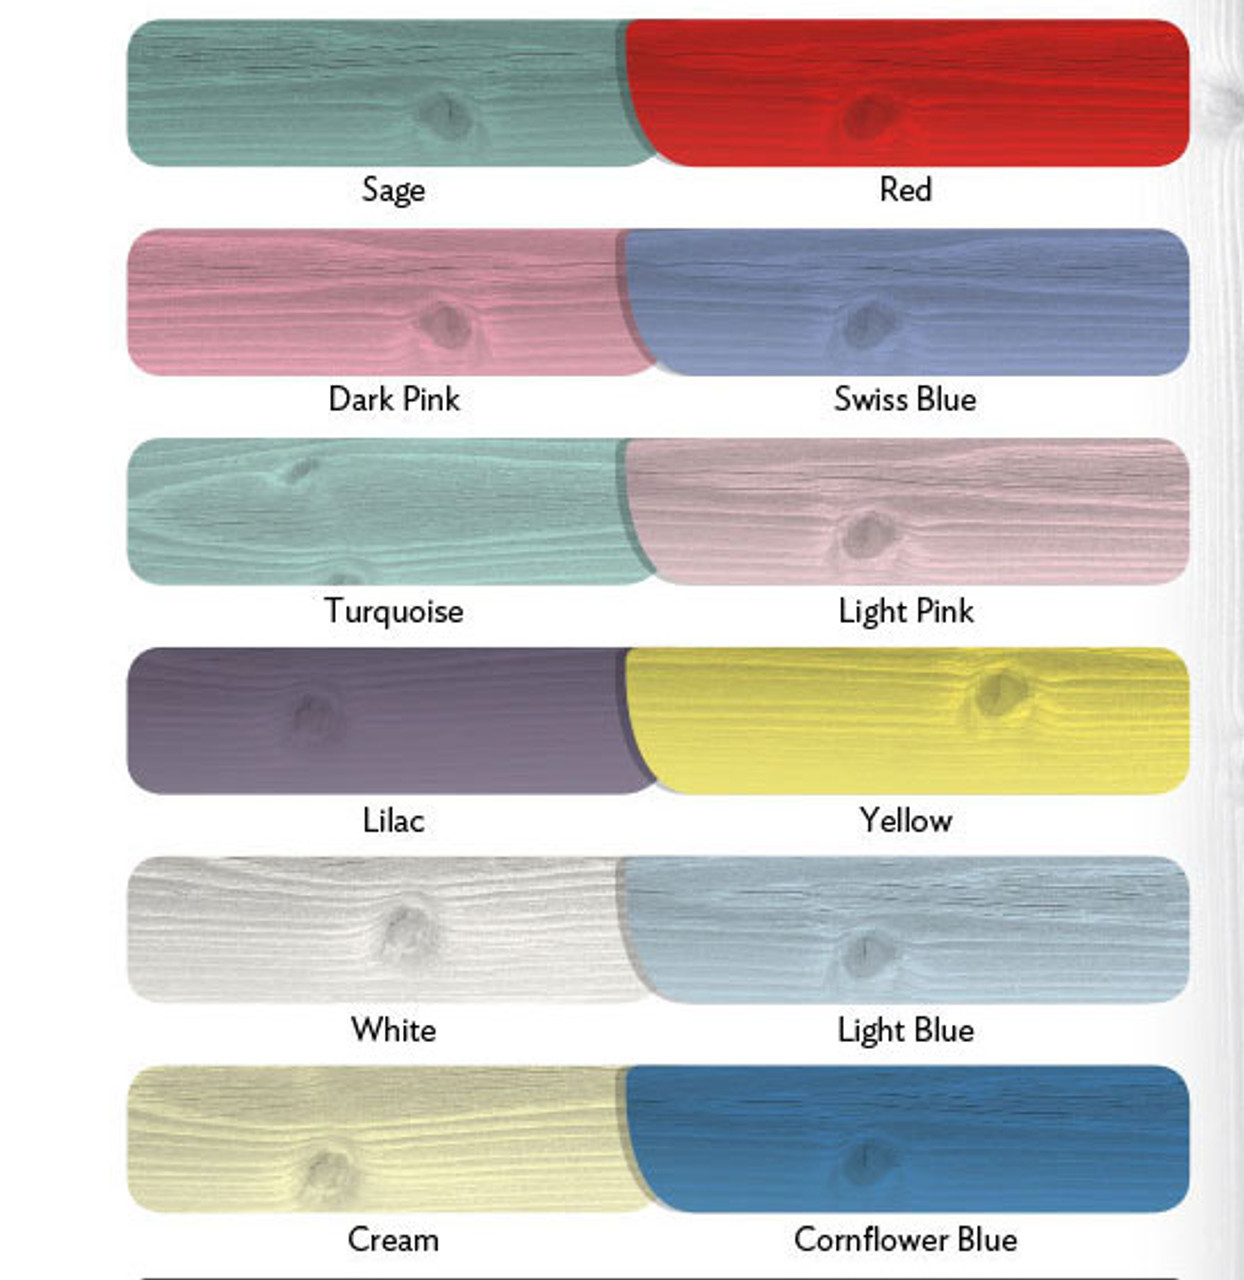 Shedlands Tools Store colours